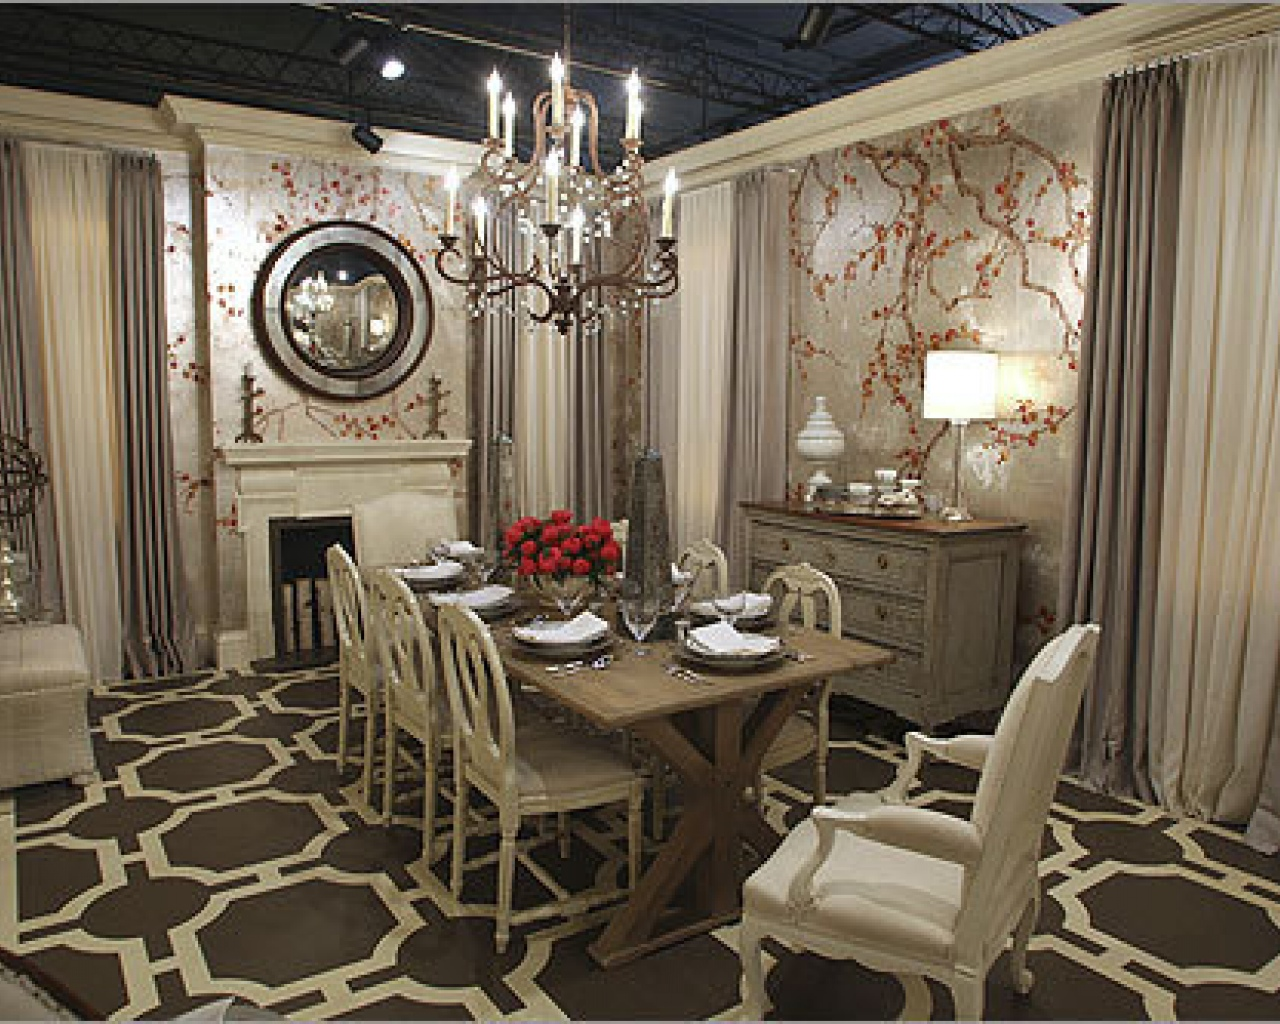 Antique Dining Room Ideas With Full Of Earthy Hues